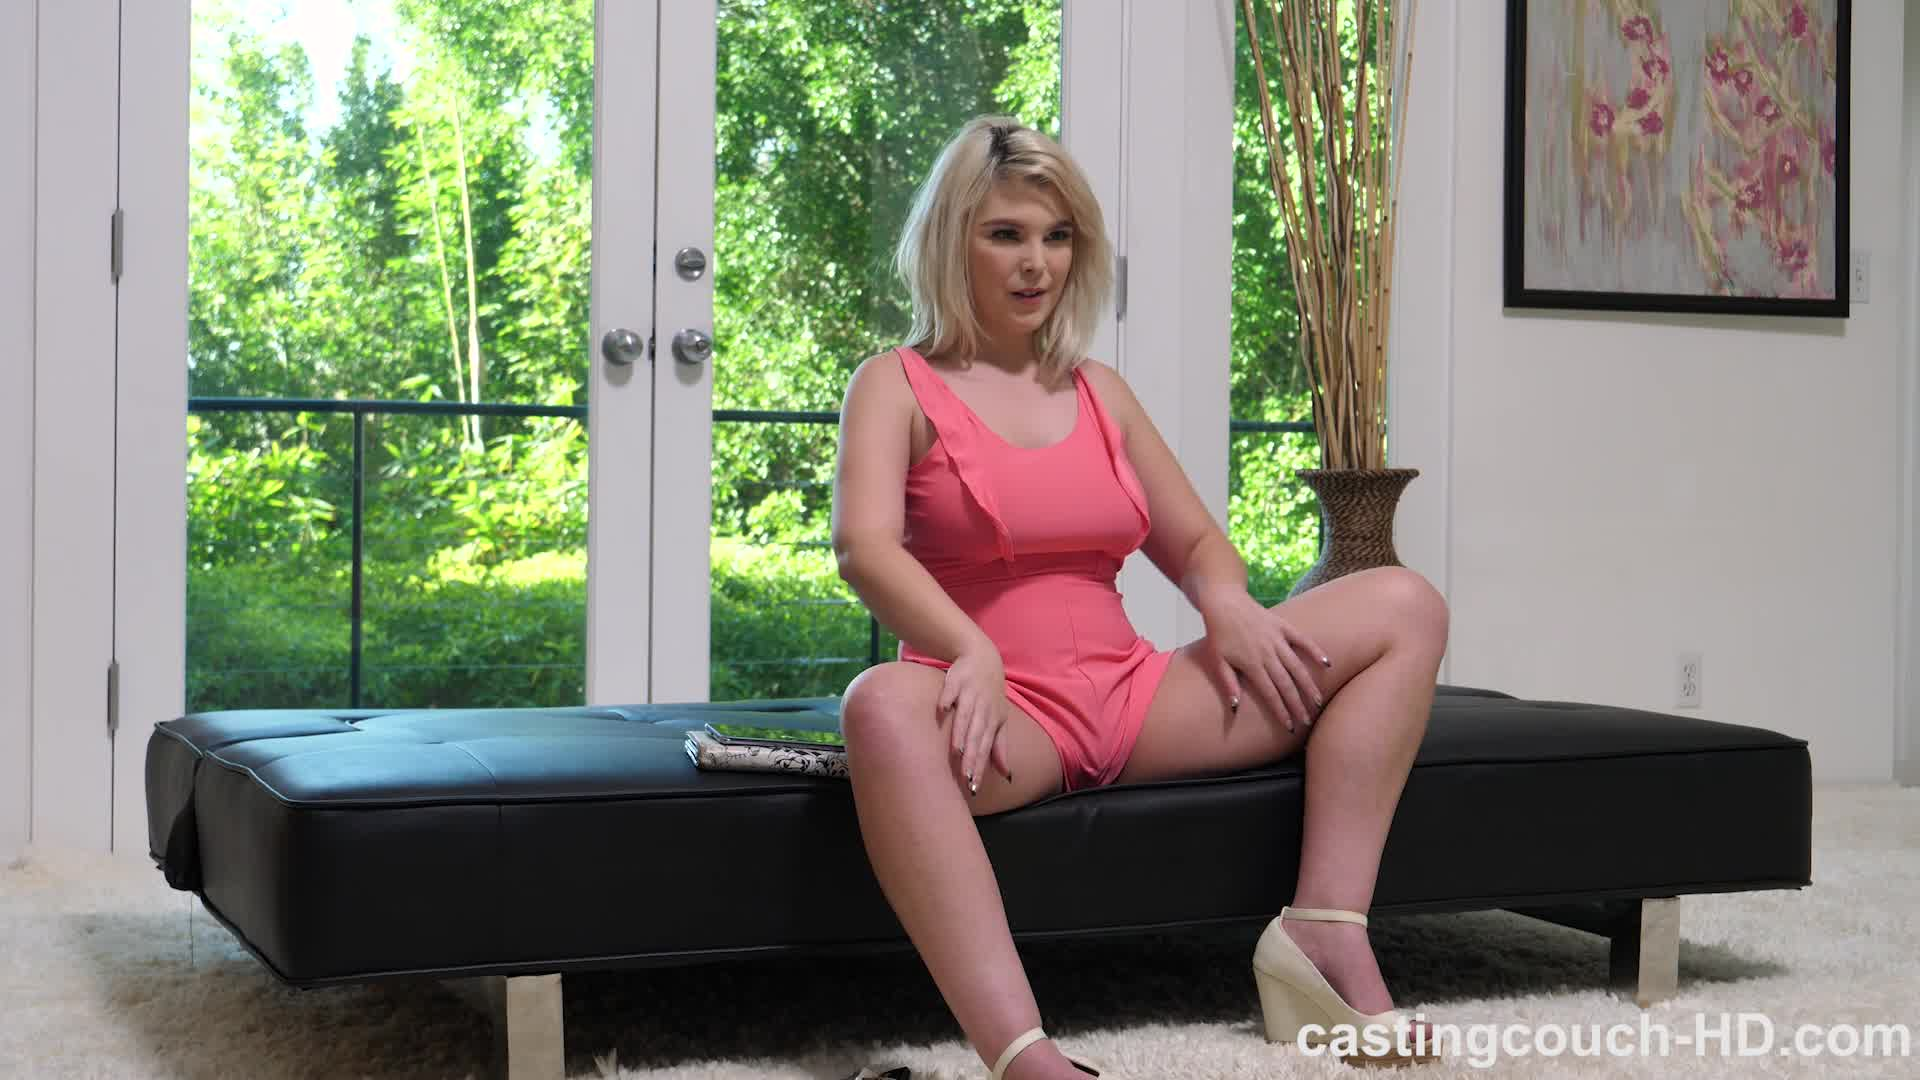 Taylor Nicole Pink Dress Casting Couch Hd